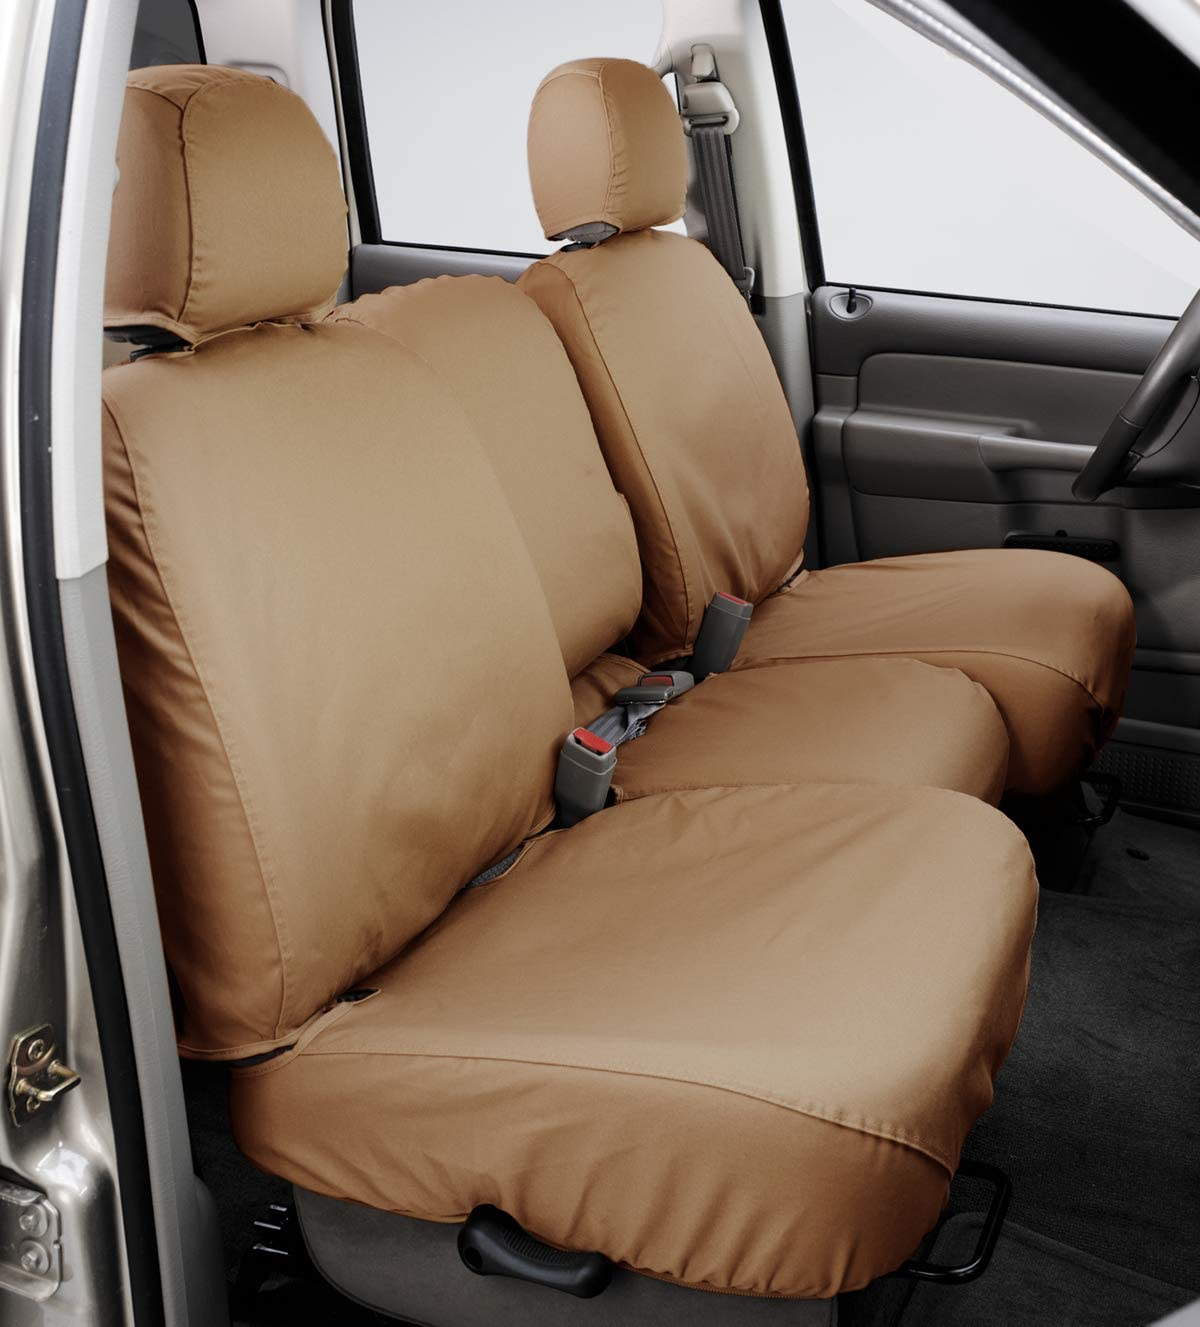 Covercraft SeatSaver Front Row Custom Fit Seat Cover for Select Ford F-150 Models Misty Grey Polycotton